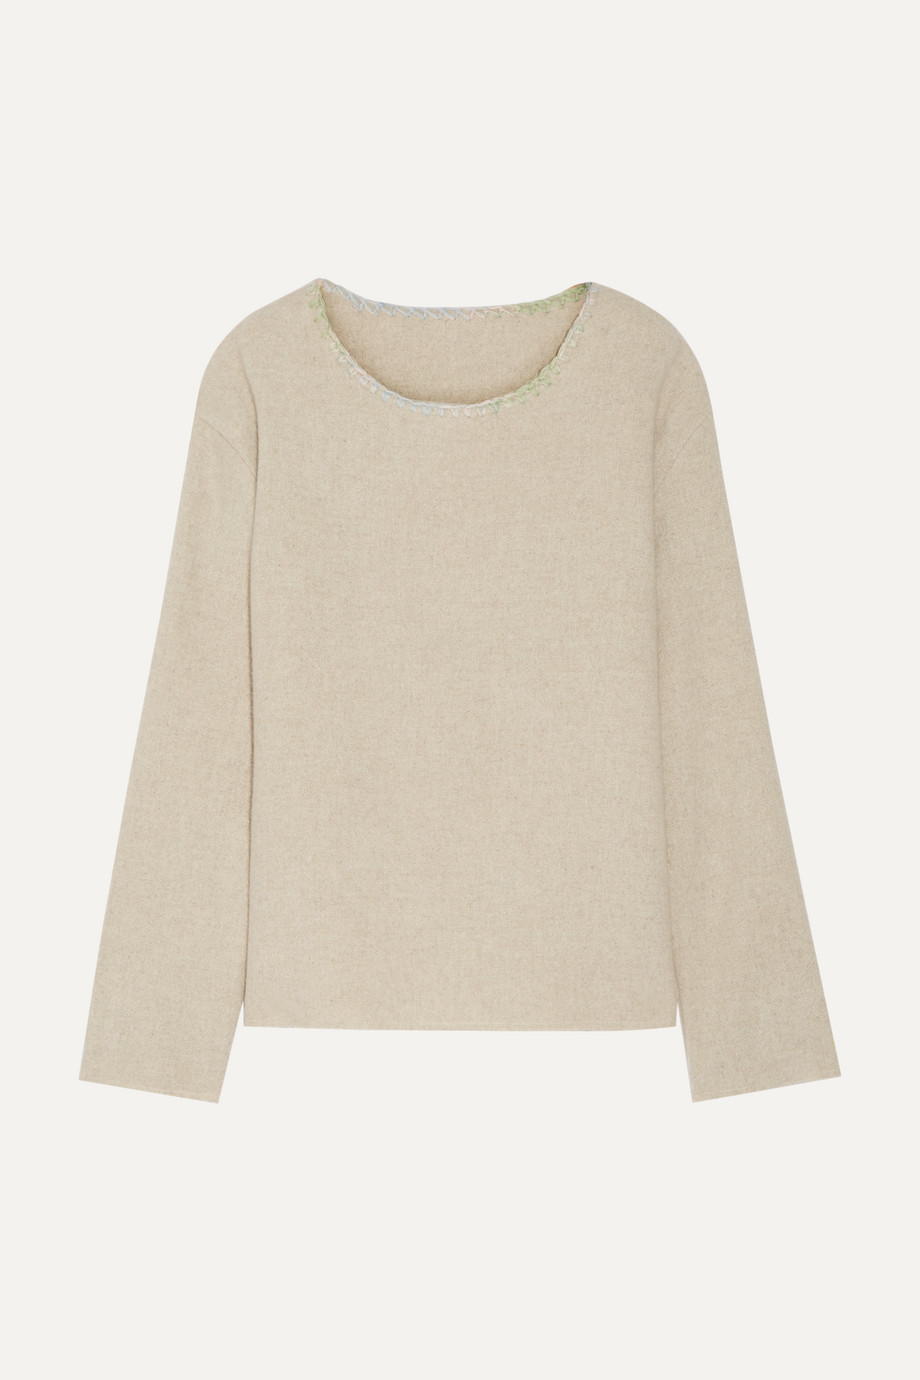 Embroidered Cashmere Sweater, The Elder Statesman, Beige, Women's, Size: M